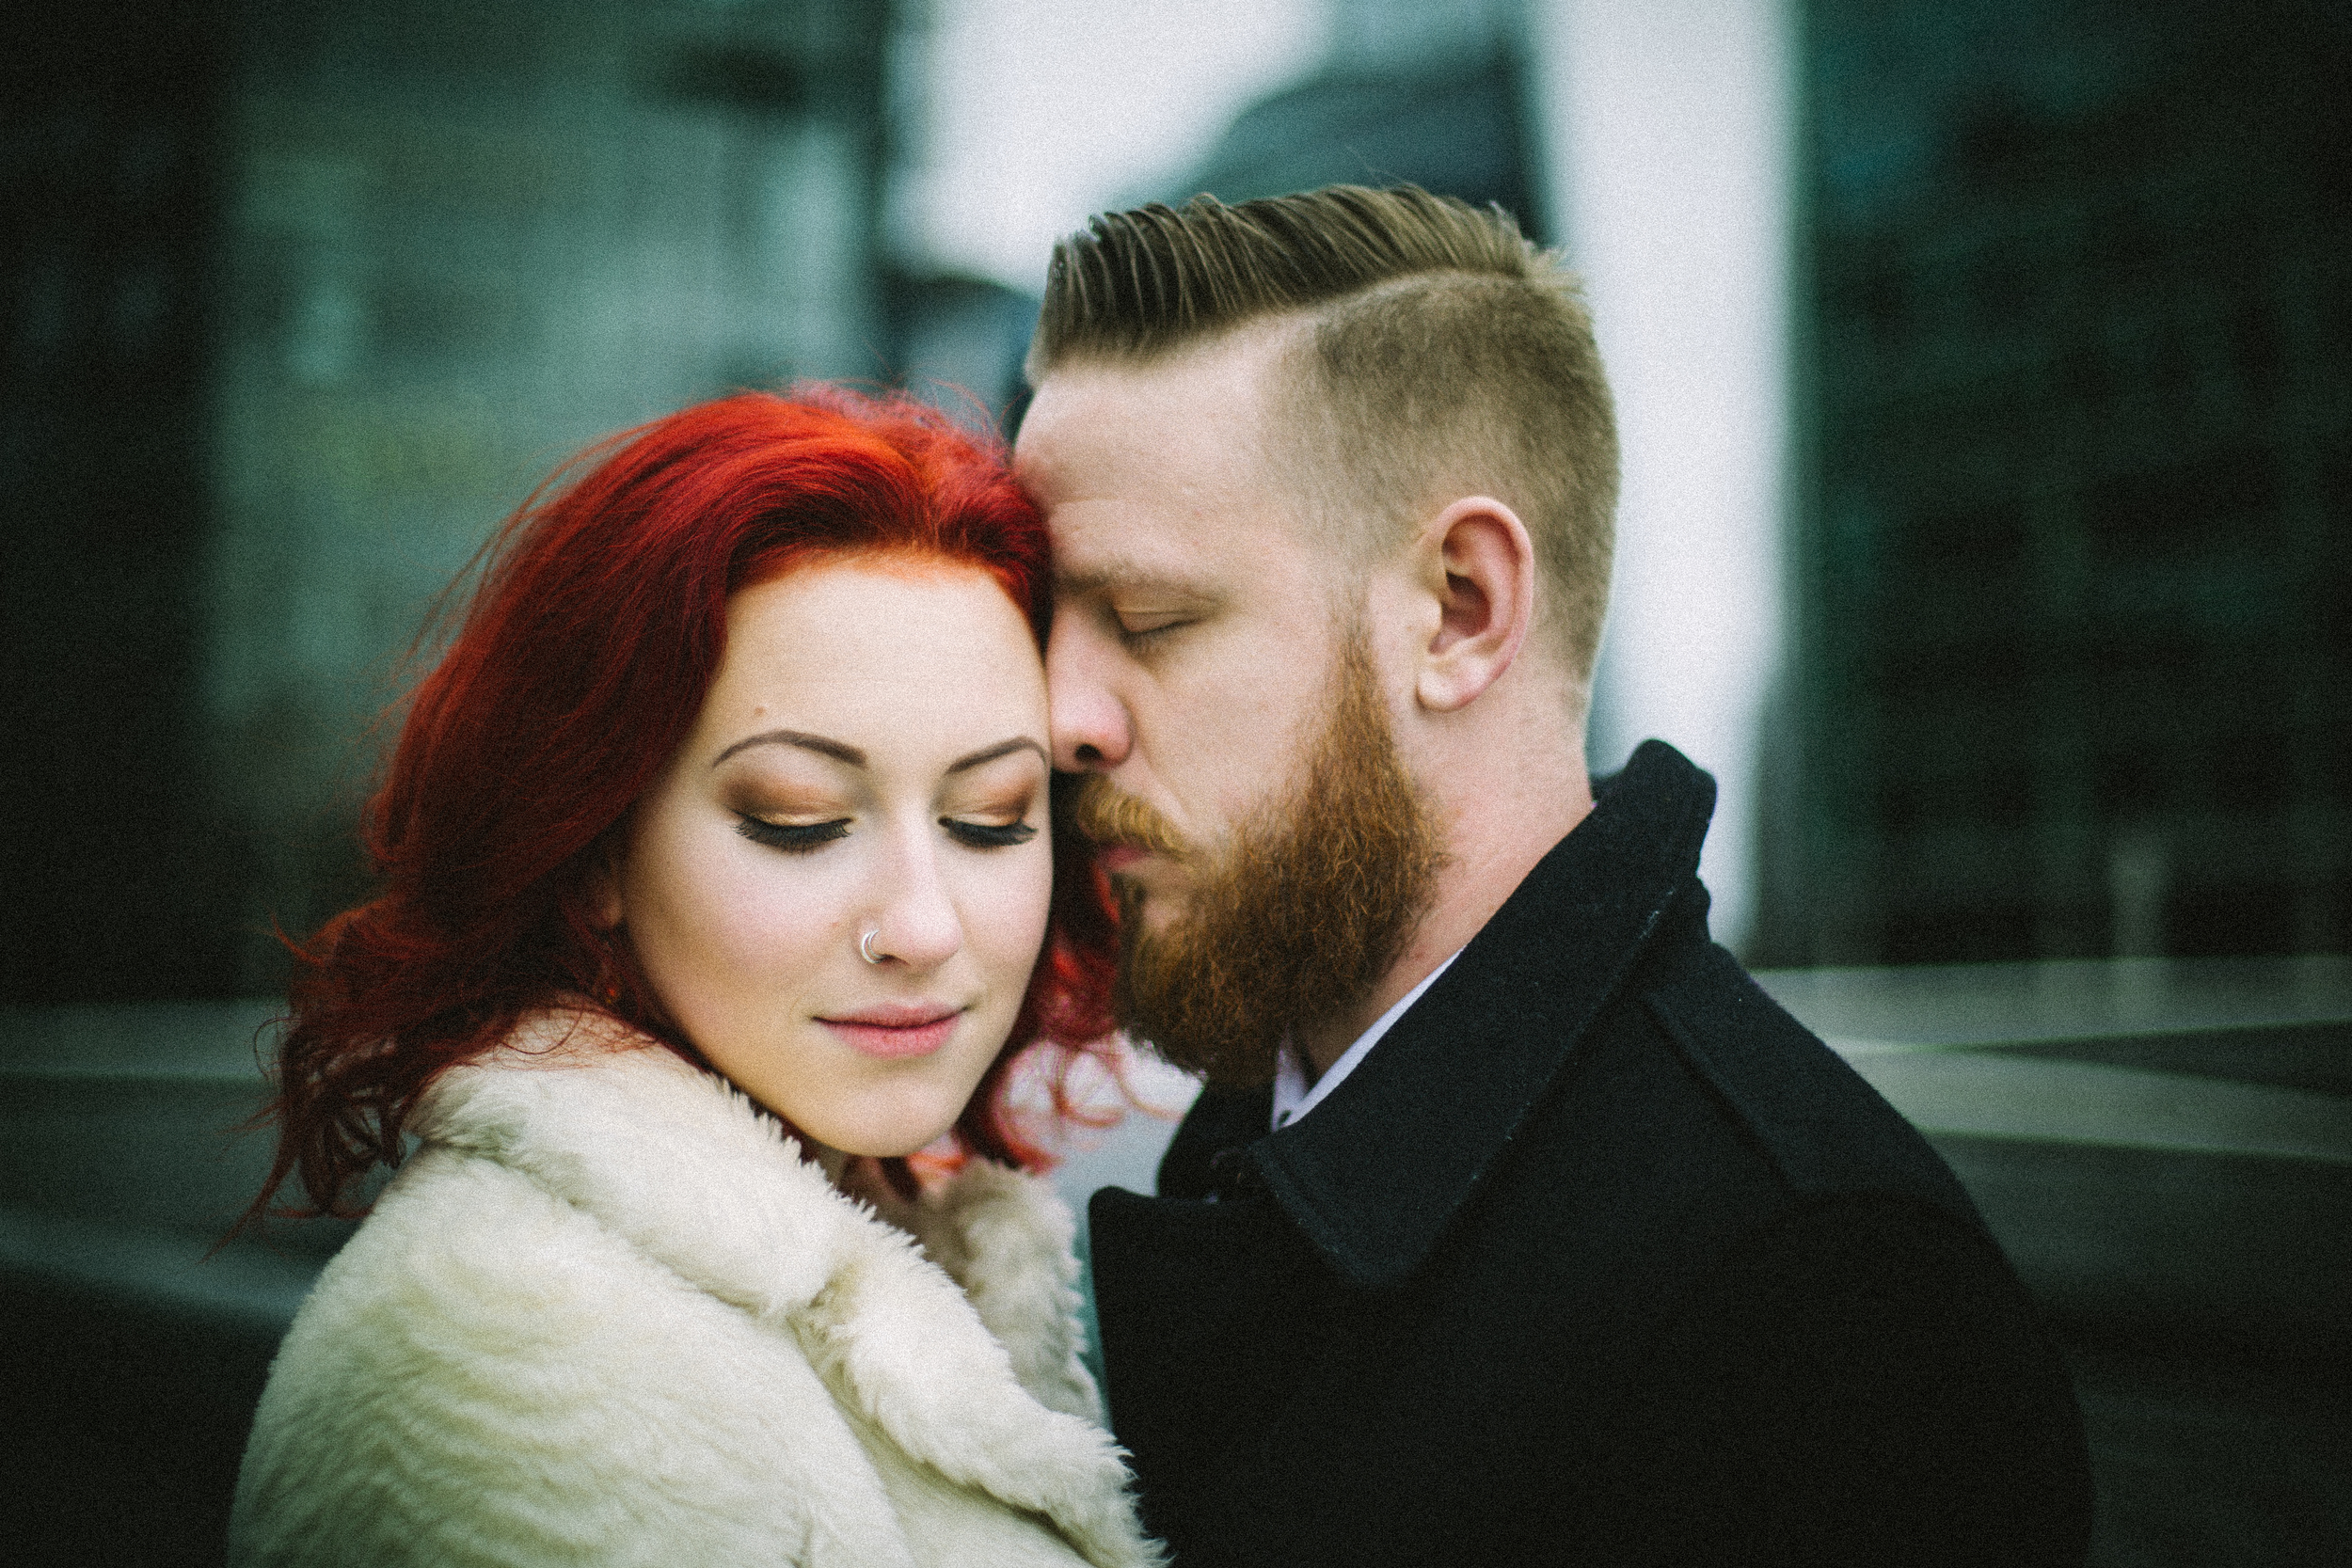 westminster-engagement-adam-rowley-wedding-photography-2